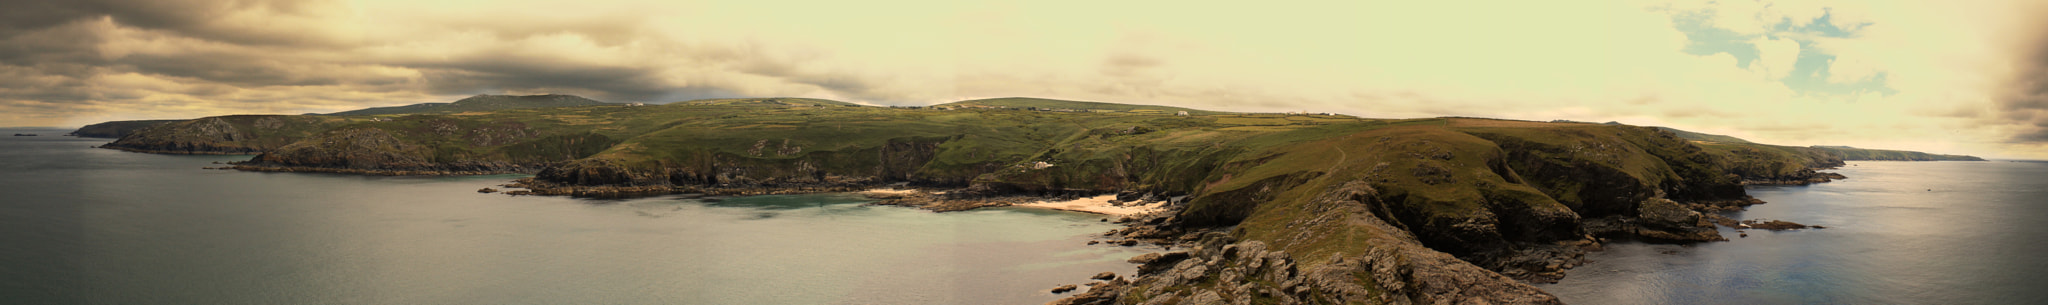 Photograph Gurnards: Panorama by Jacca  Deeble  on 500px